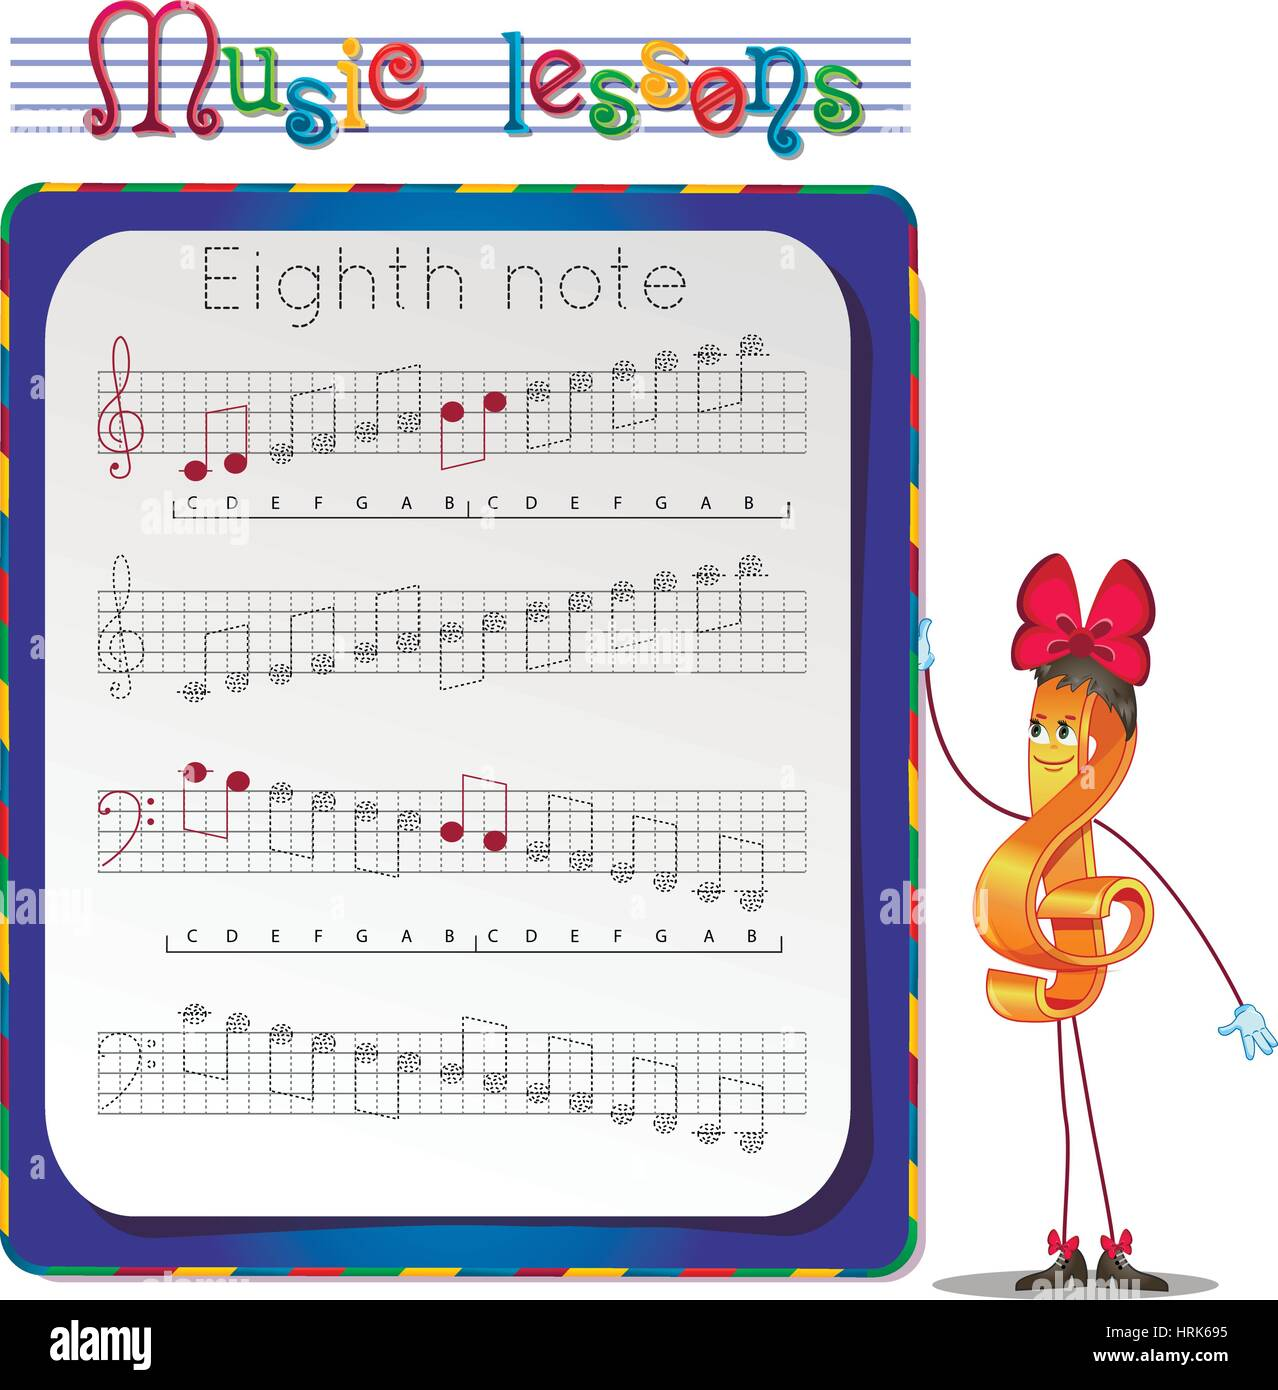 Eighth Note Stock Photos Amp Eighth Note Stock Images